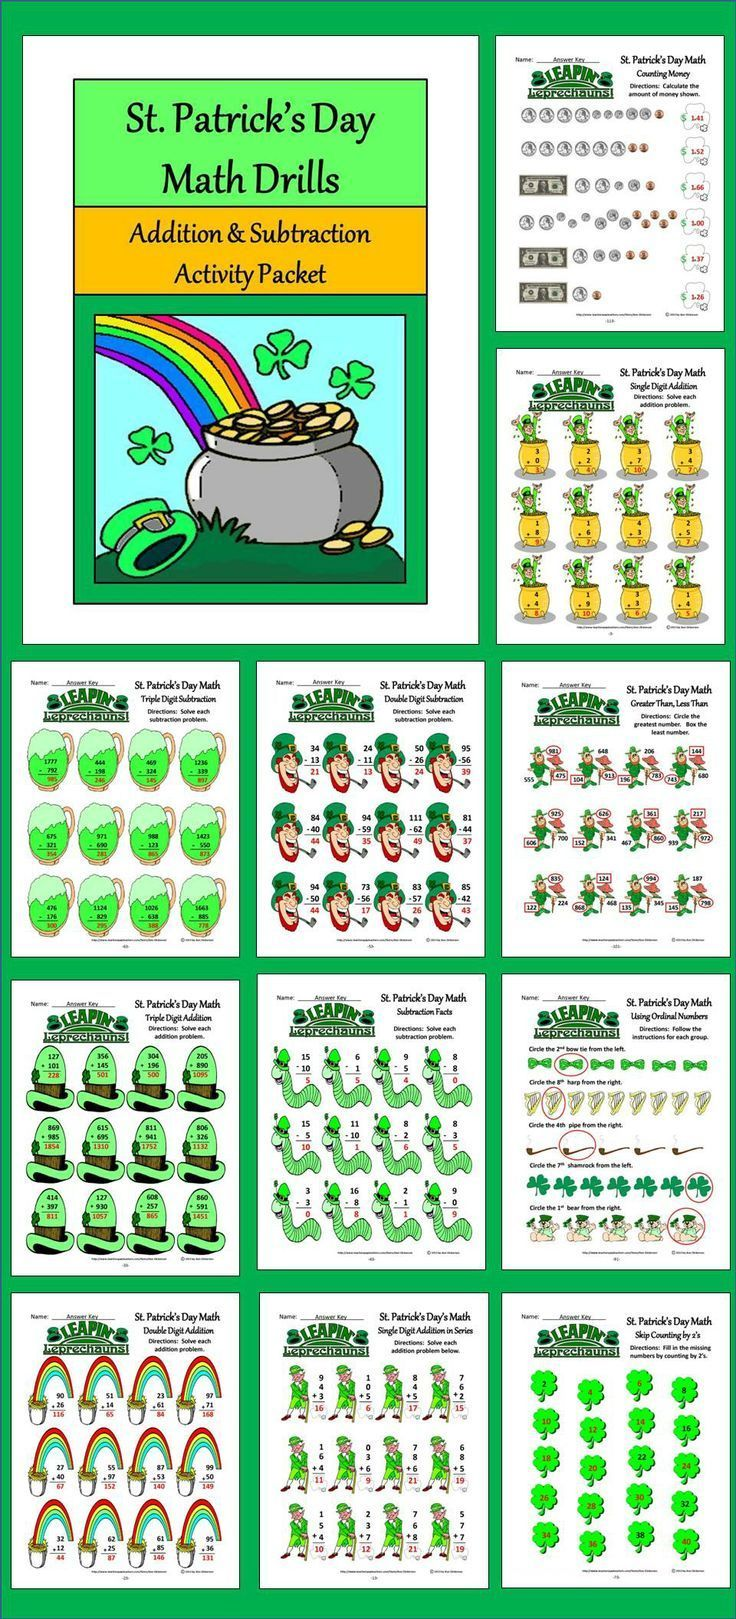 St. Patrick's Day Math Drills: St. Patrick's Day math activity packet providing many addition and subtraction drills/exercises.  Contents include: * Single, Double, & Triple Digit Addition * Single Digit Addition in Series * Basic Subtraction Facts * Doub